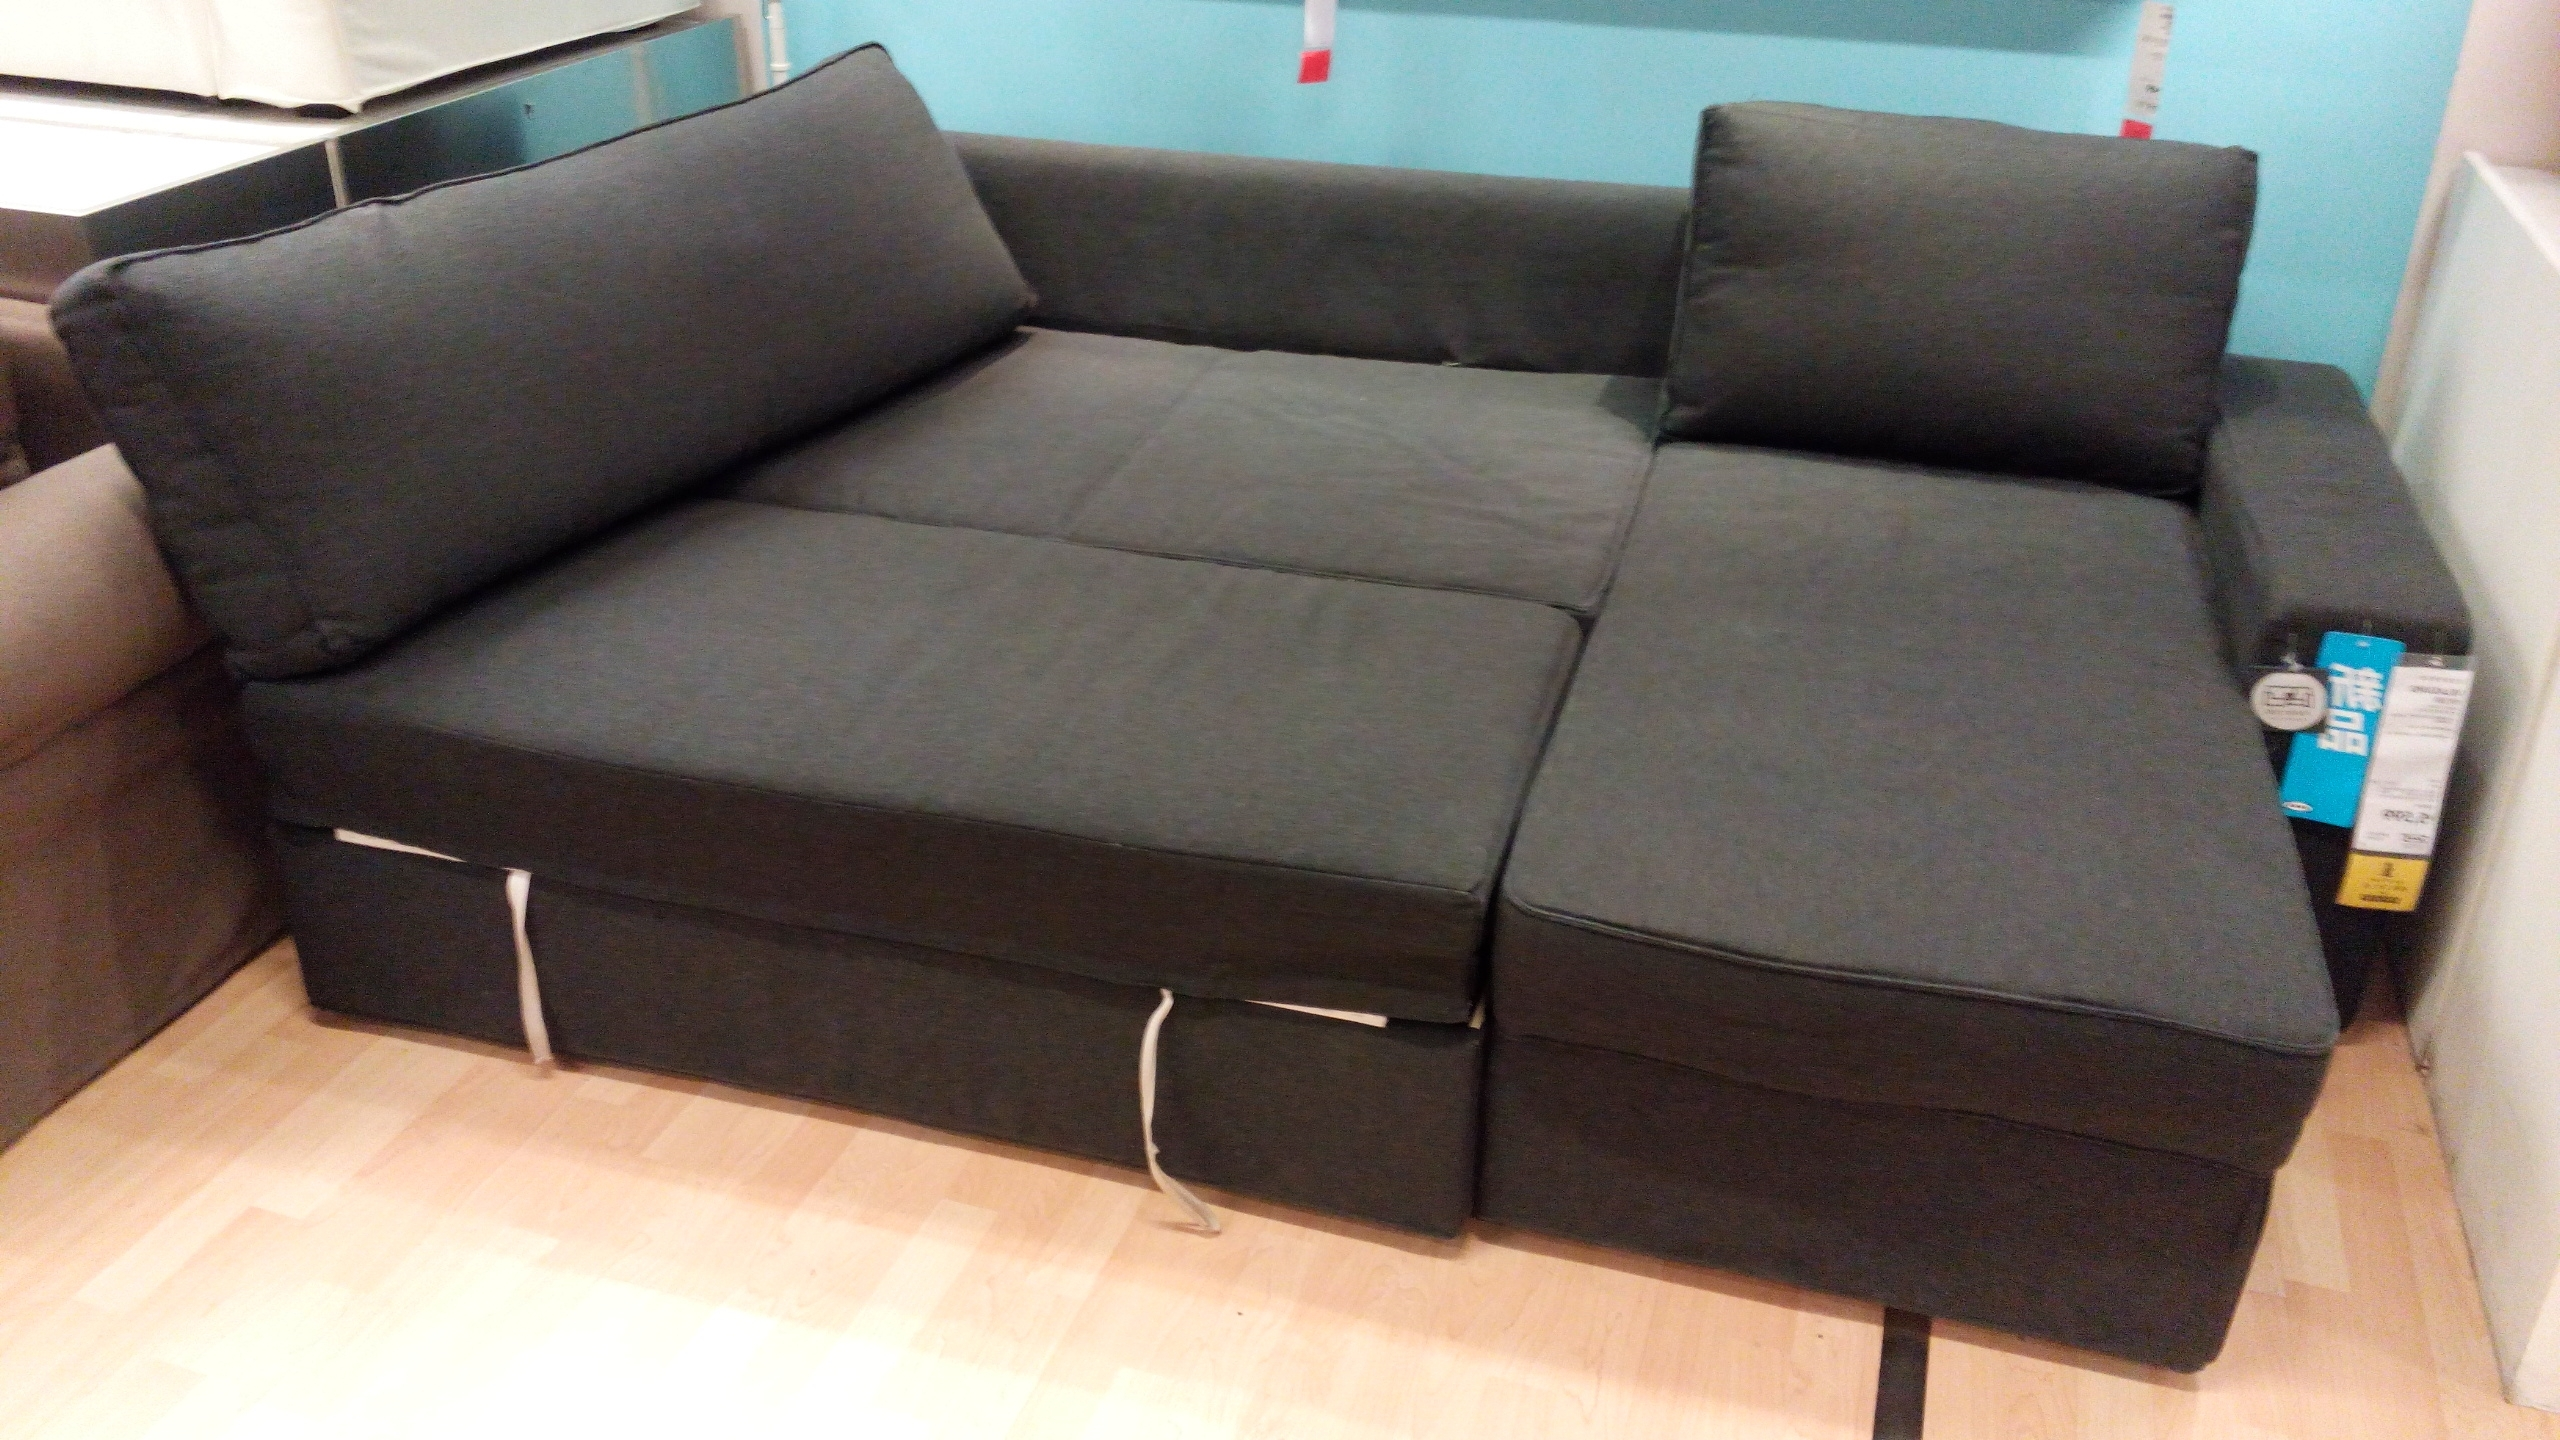 Well Liked Ikea Chaise Sofas Inside Ikea Vilasund And Backabro Review – Return Of The Sofa Bed Clones! (View 15 of 15)